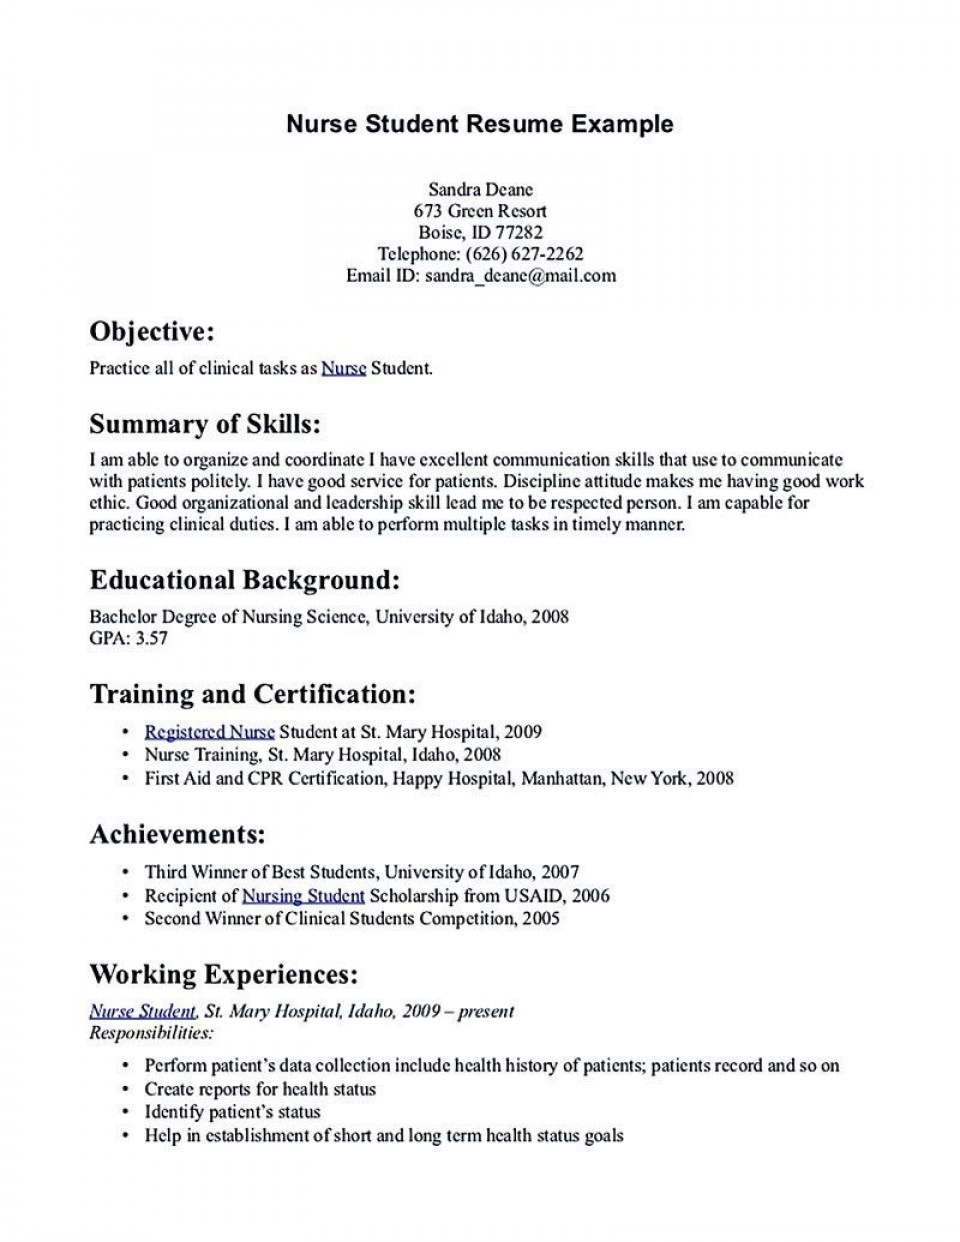 002 Excellent Nursing Student Resume Template Inspiration  Free Word960